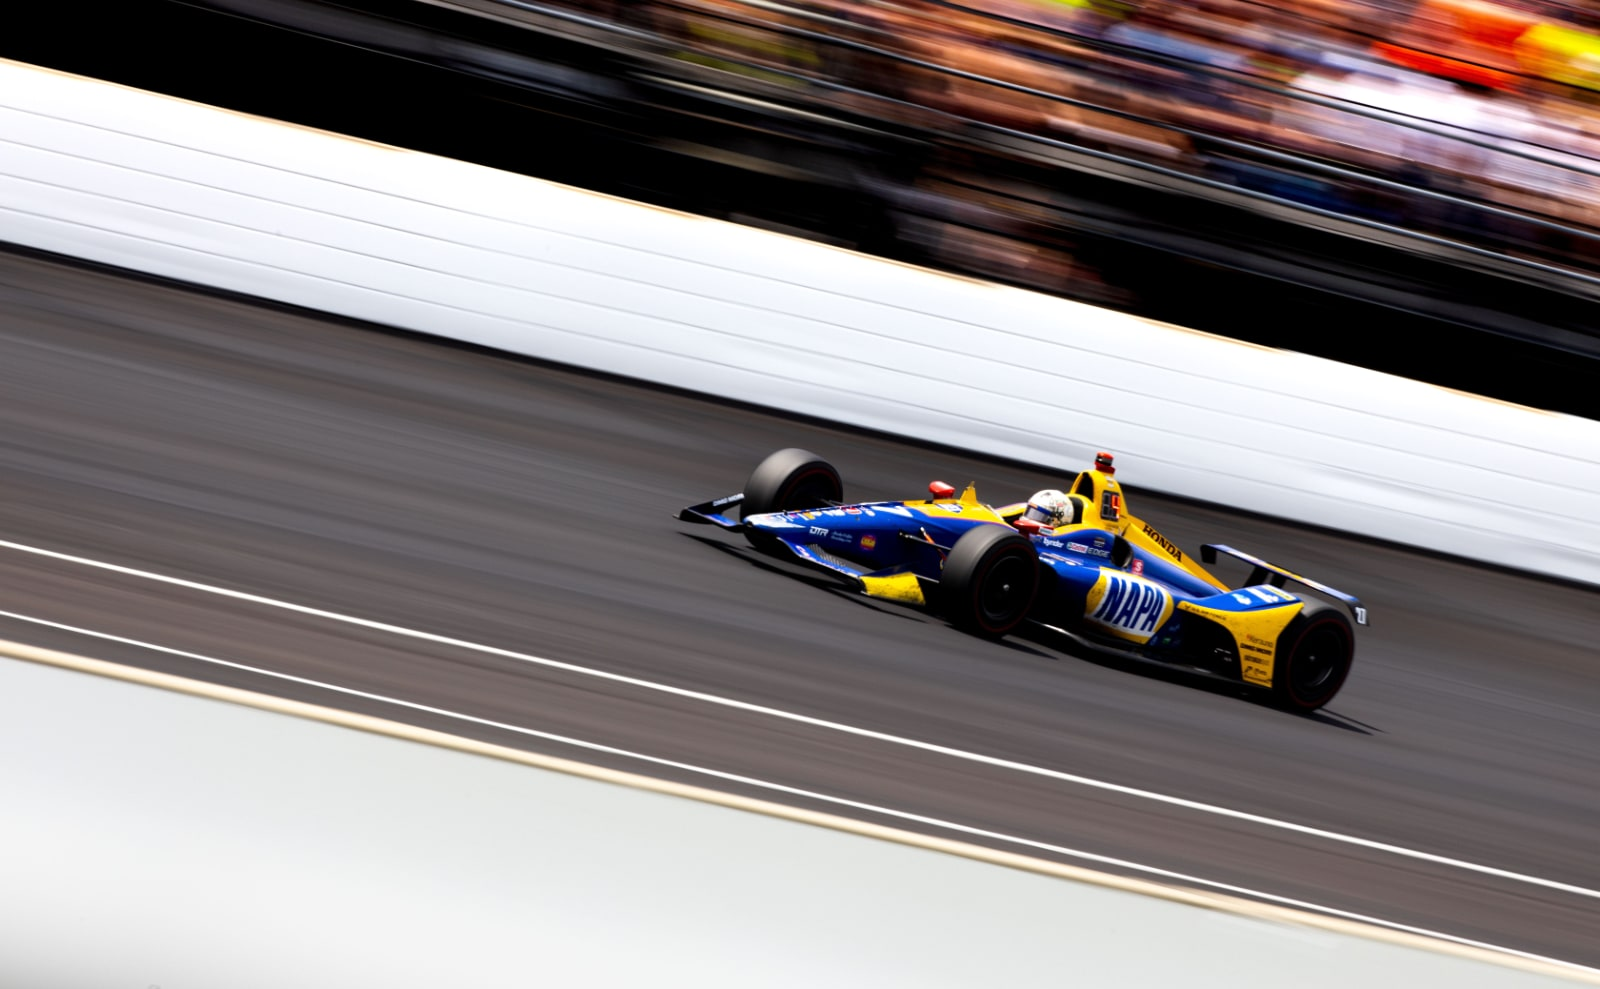 Alexander Rossi laps IMS in 2019 Indy 500 race